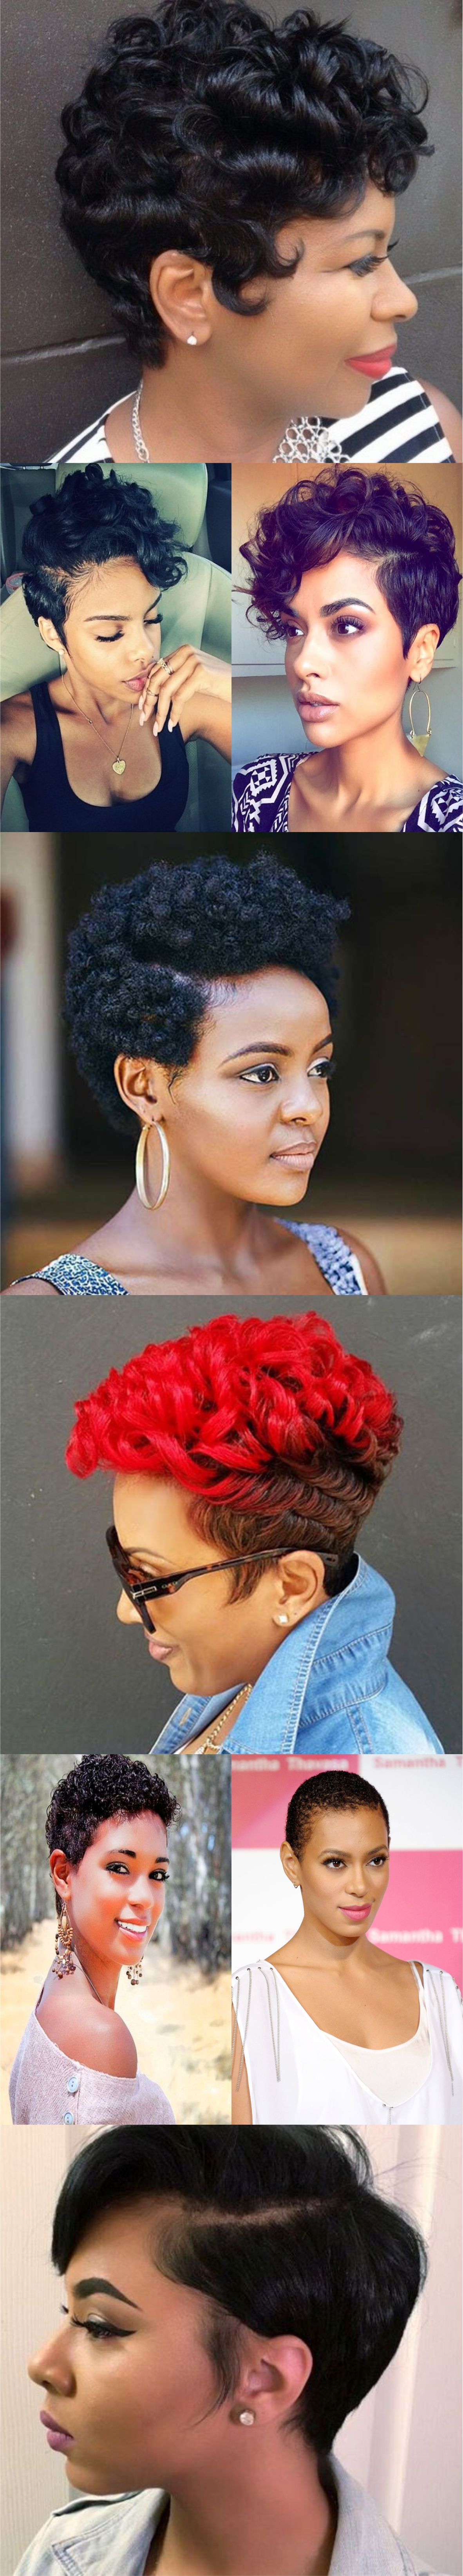 Short hairstyles for black women 2018